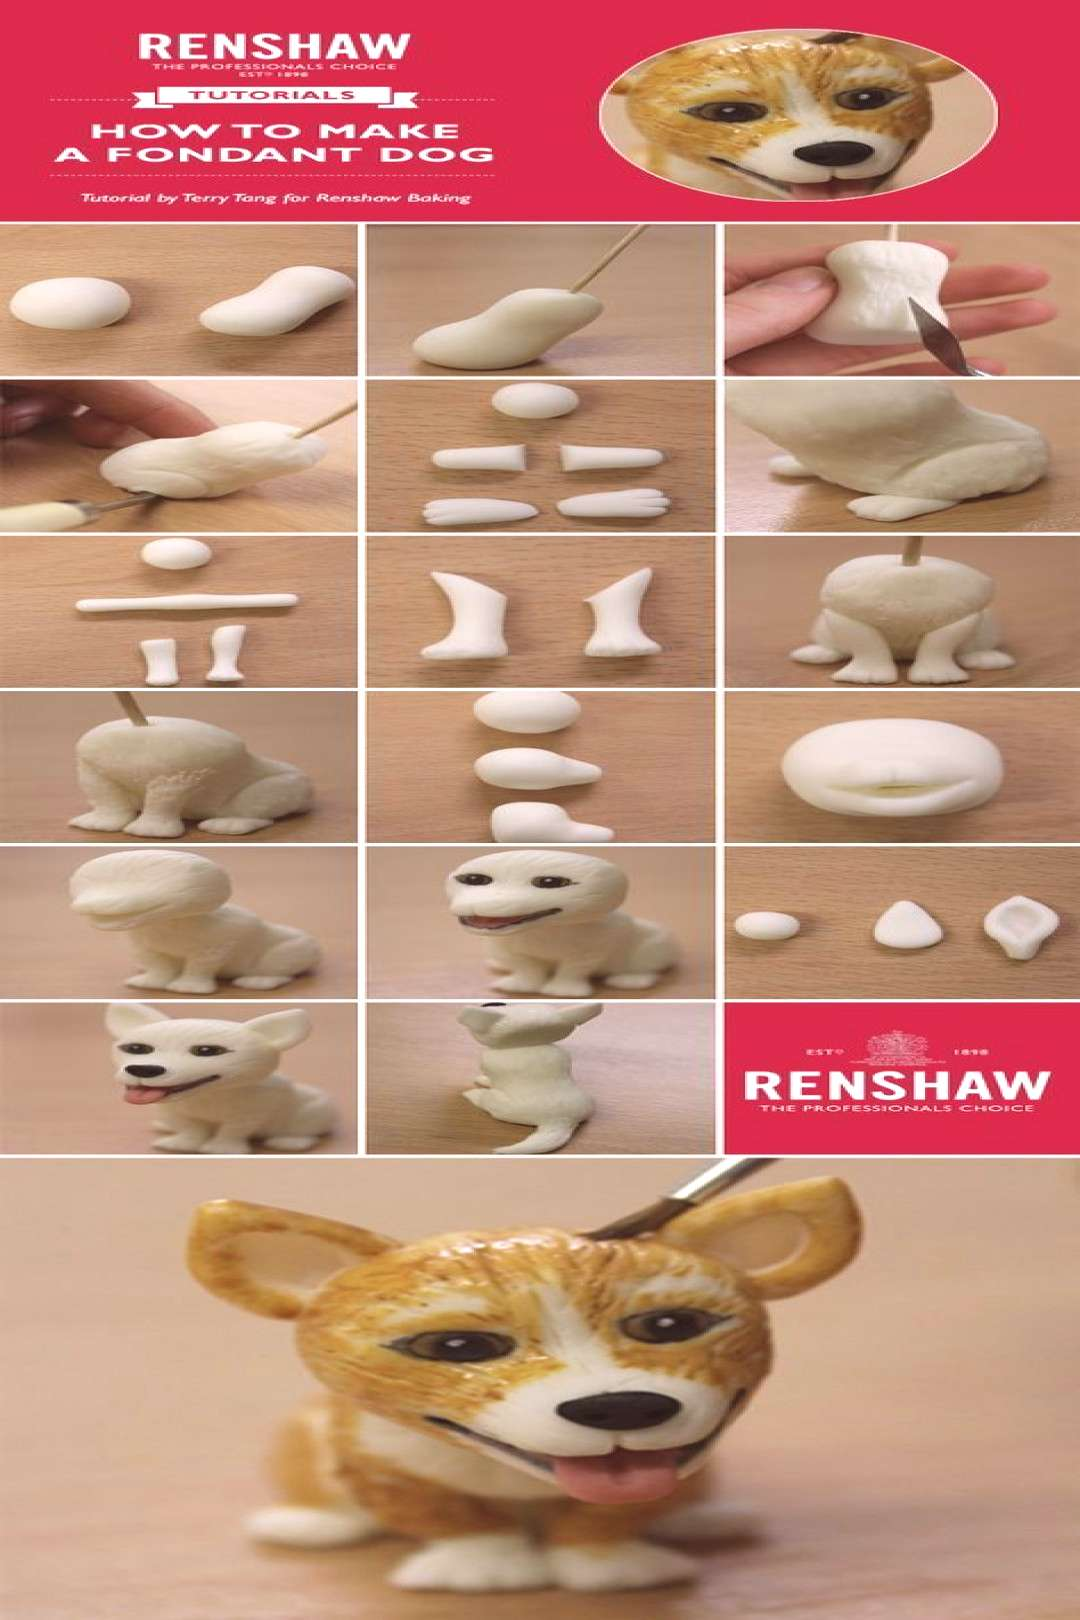 renshaw fondant dog info_2 - Tap the pin for the most adorable pawtastic fur baby apparel! You'll l